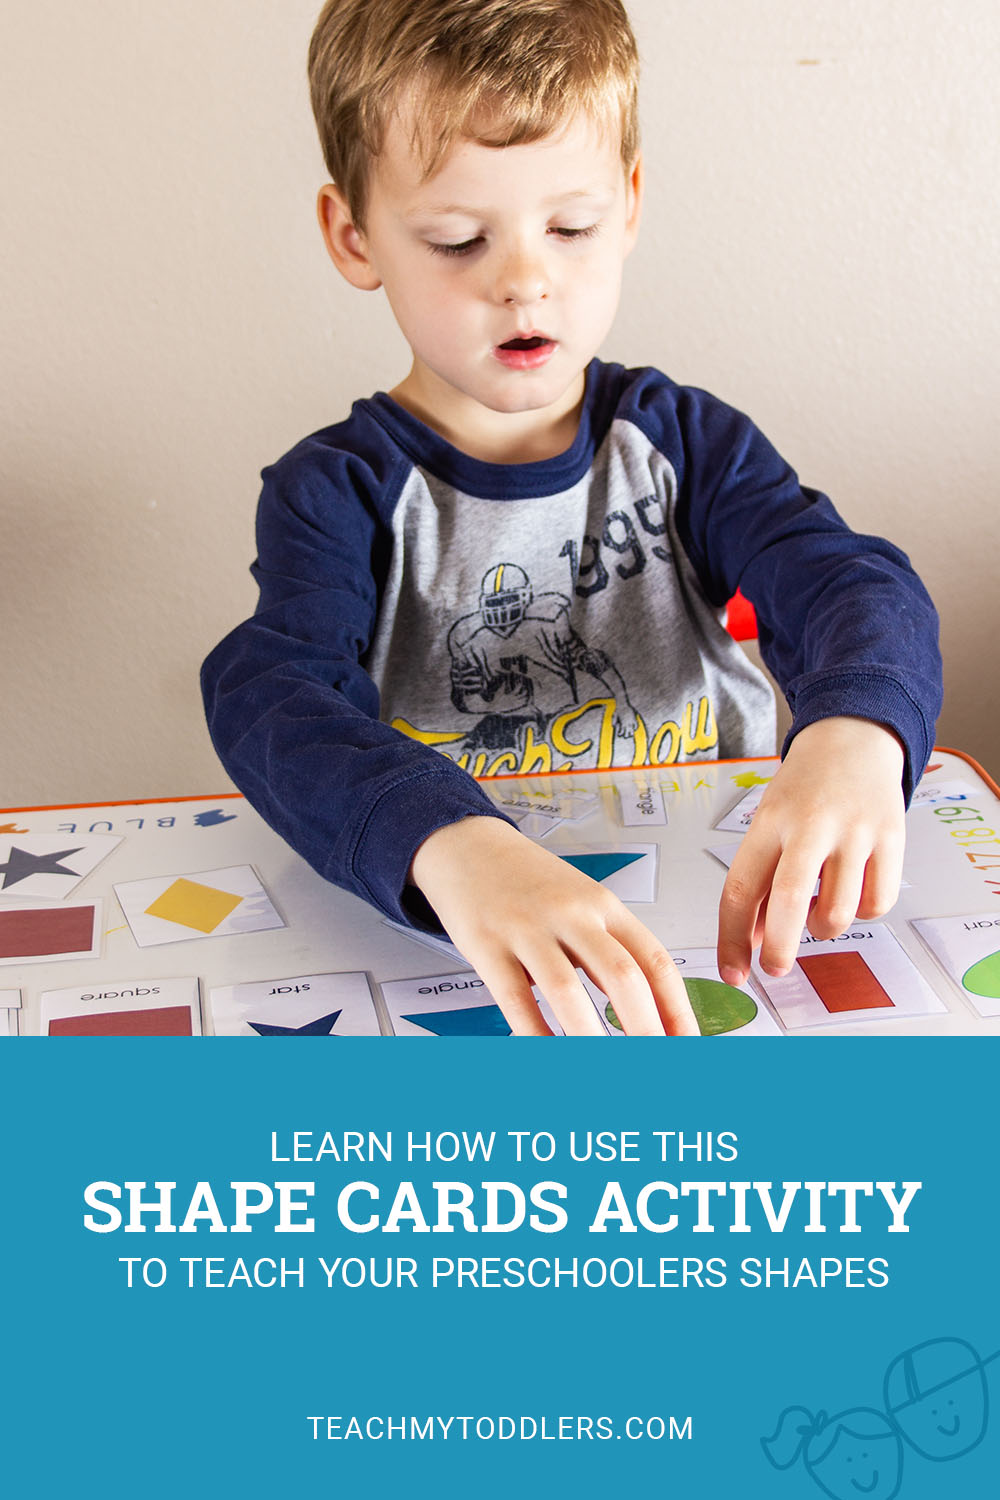 Learn how to use this shape cards activity to teach preschoolers shapes